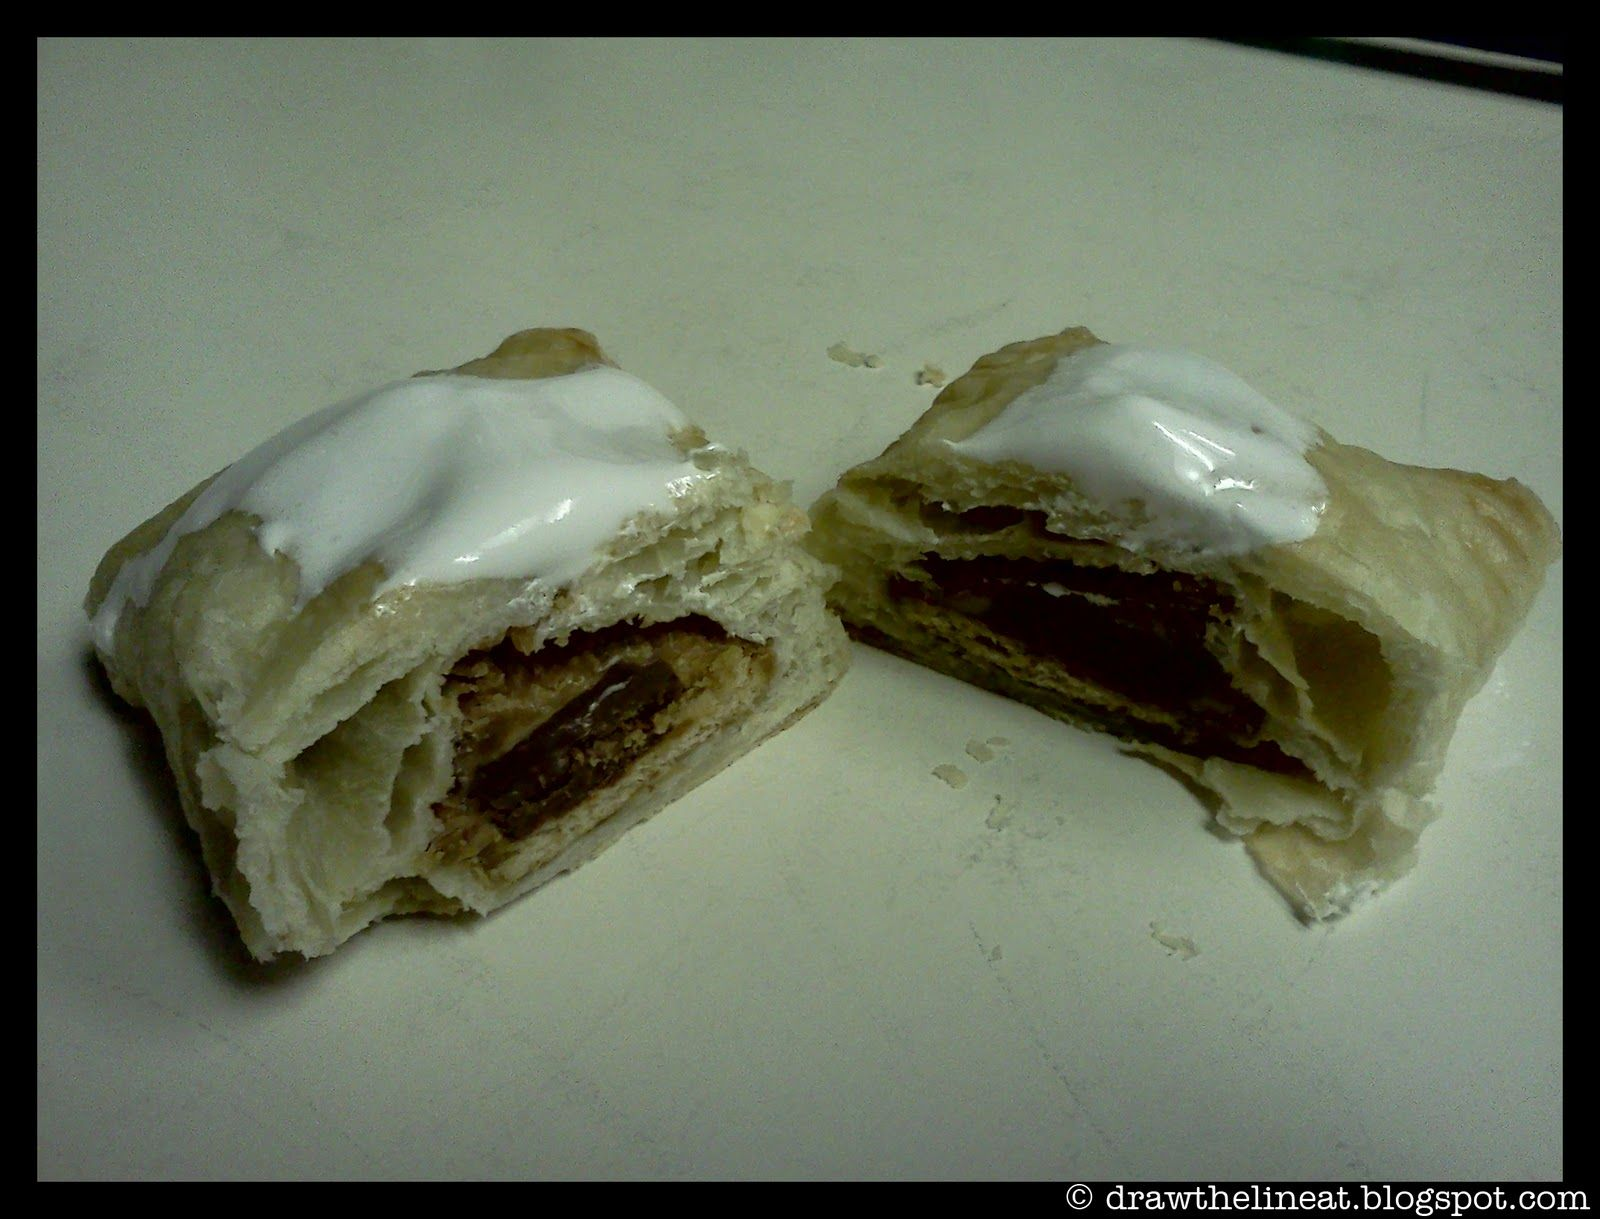 Draw The Line At: S'more Pastries